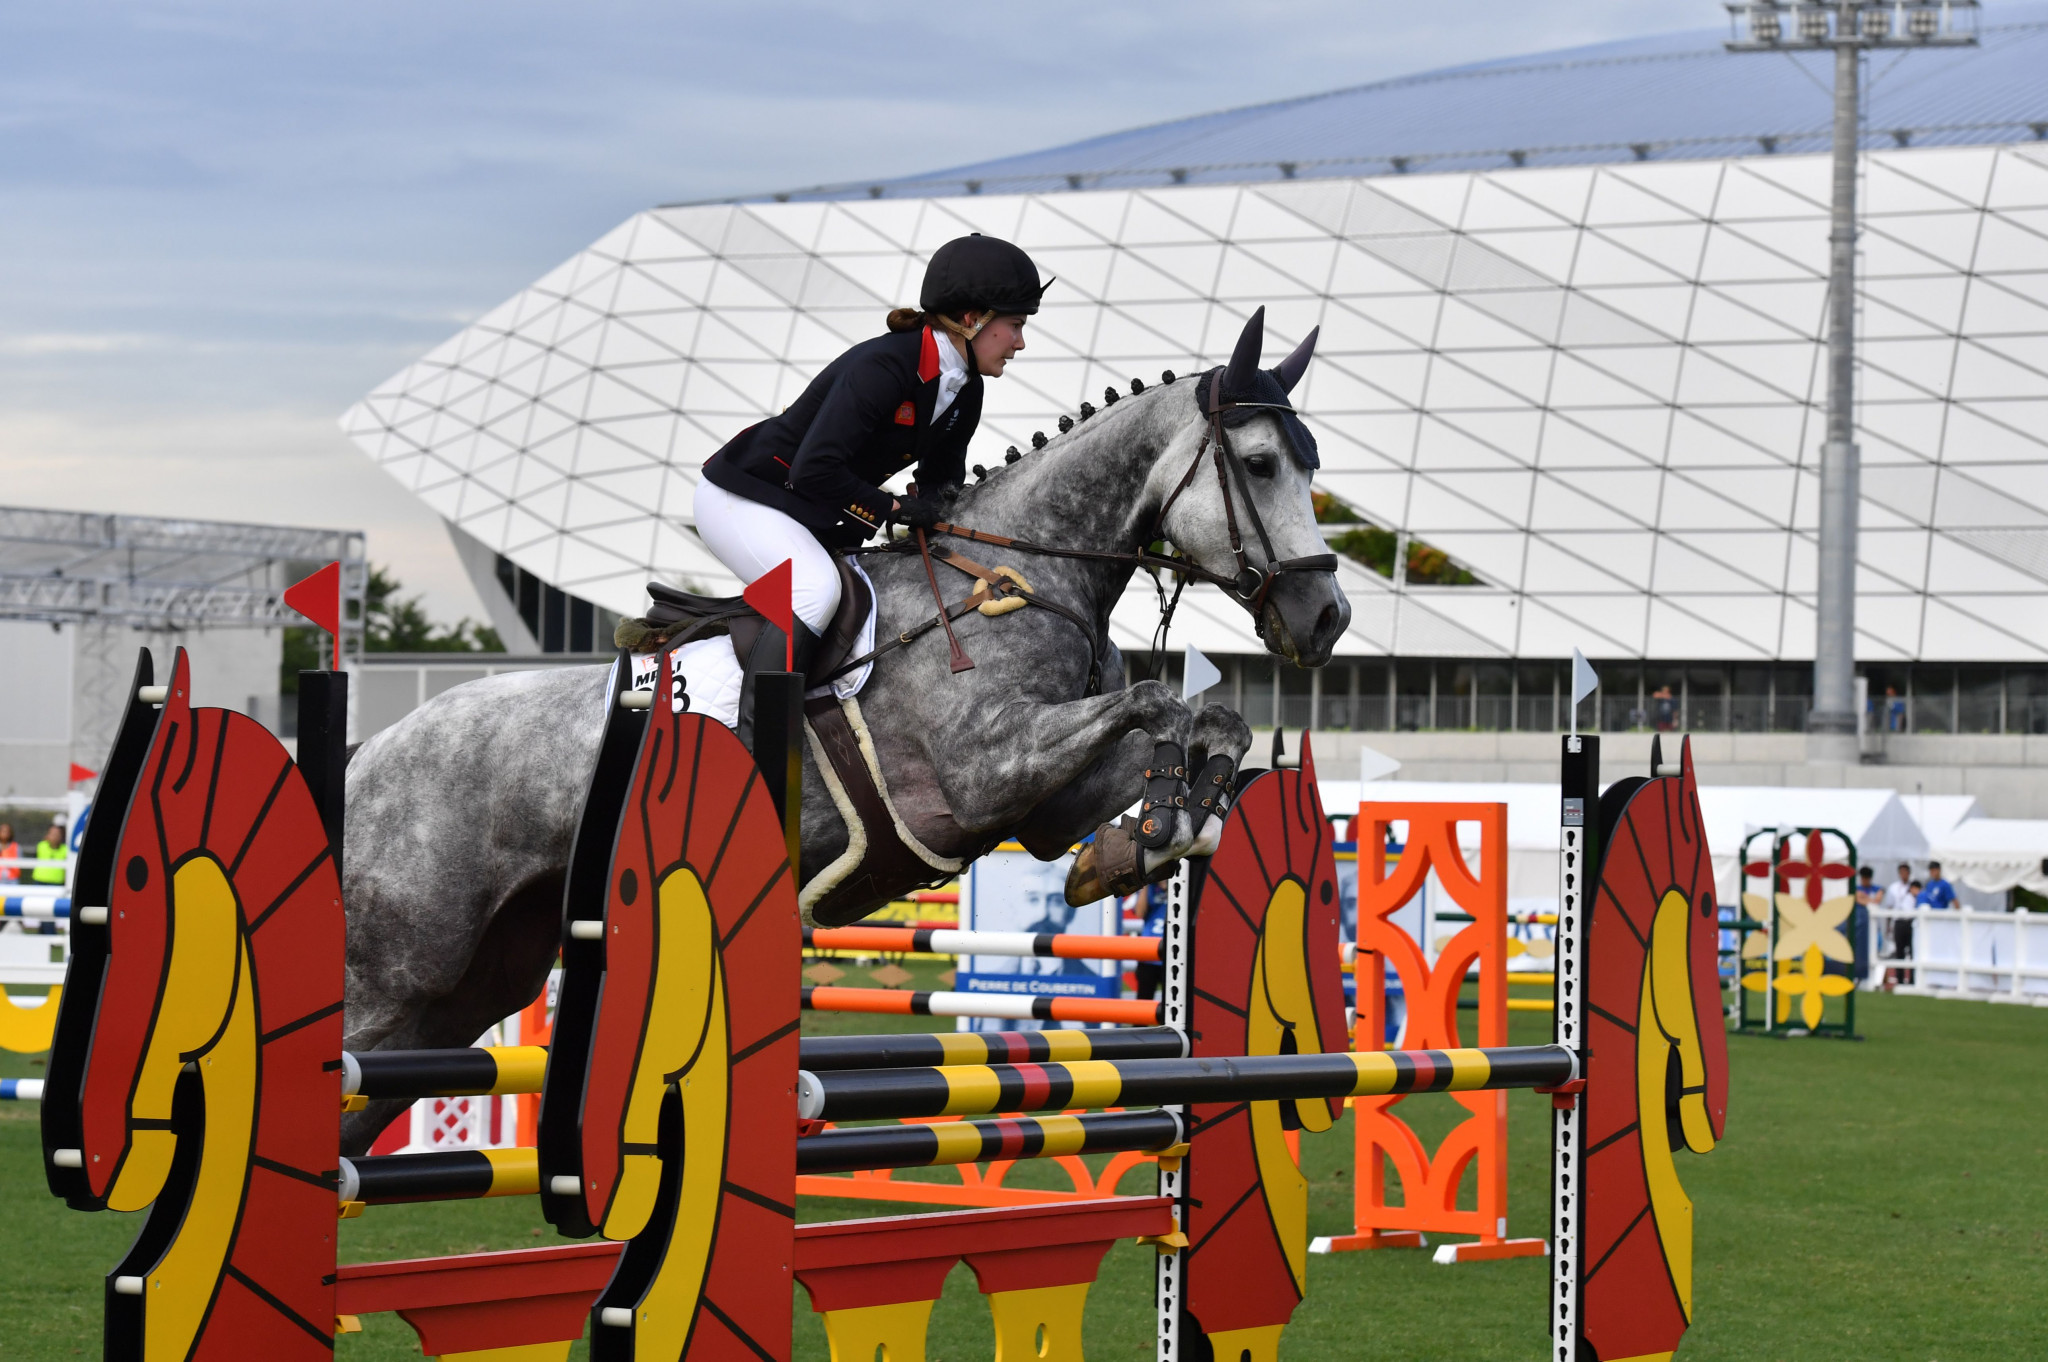 French impresses in qualification at European Modern Pentathlon Championships